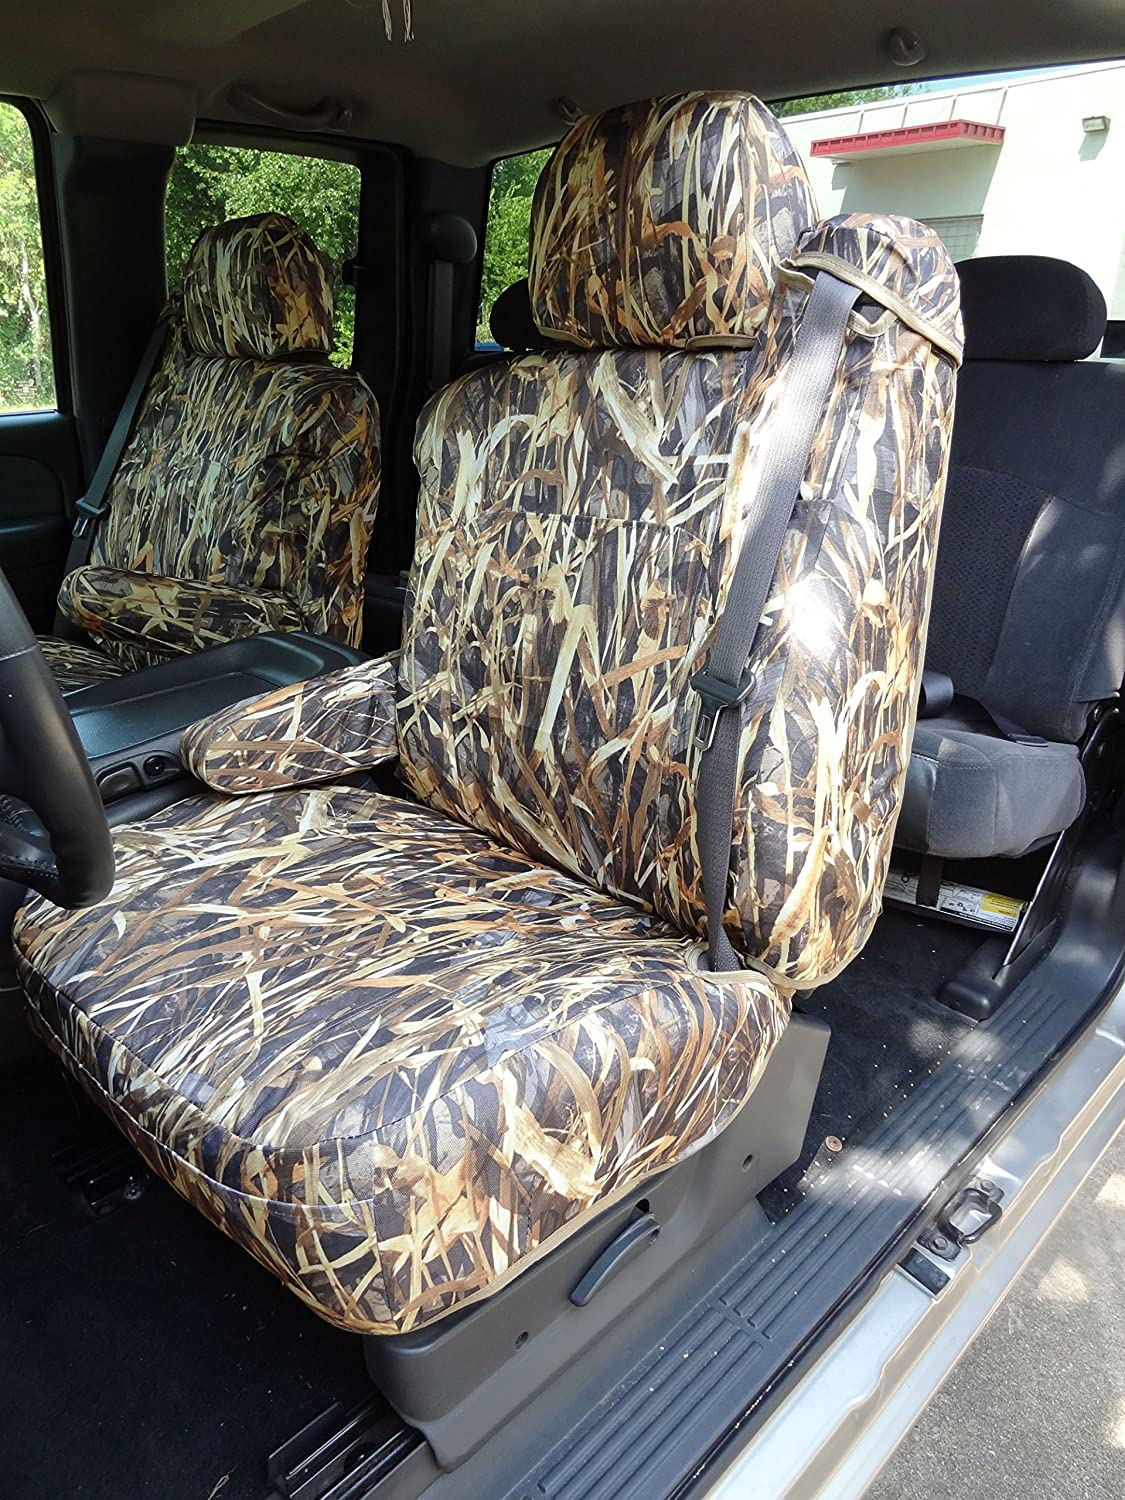 1999-2002 Chevy Silverado, Suburban, Tahoe, GMC Sierra,Yukon Front Bucket Exact Fit Seat Covers, in Savanna Camo Endura